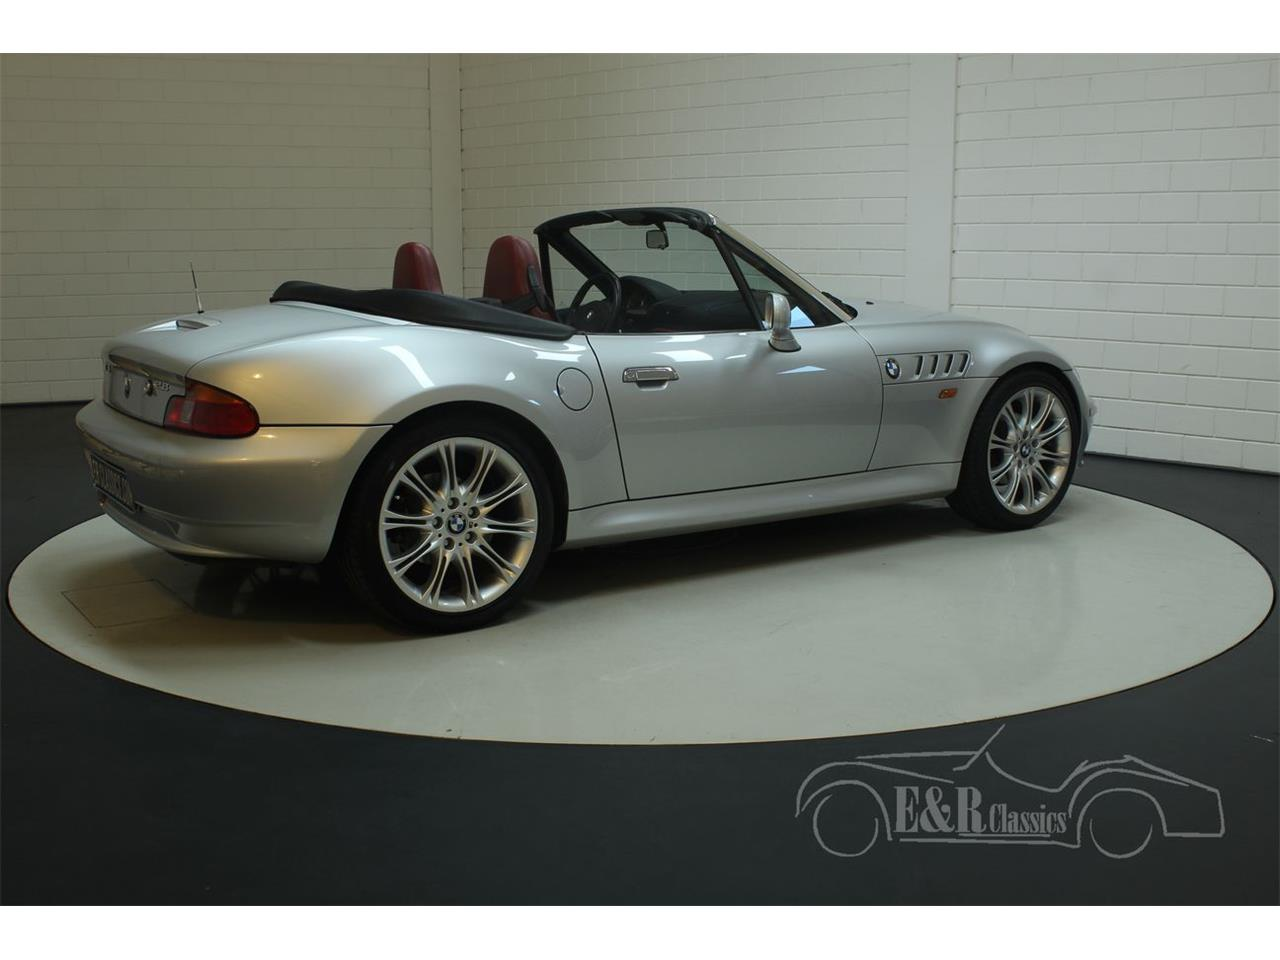 Large Picture of '01 BMW Z3 located in Waalwijk Noord-Brabant - $19,150.00 - PNX1